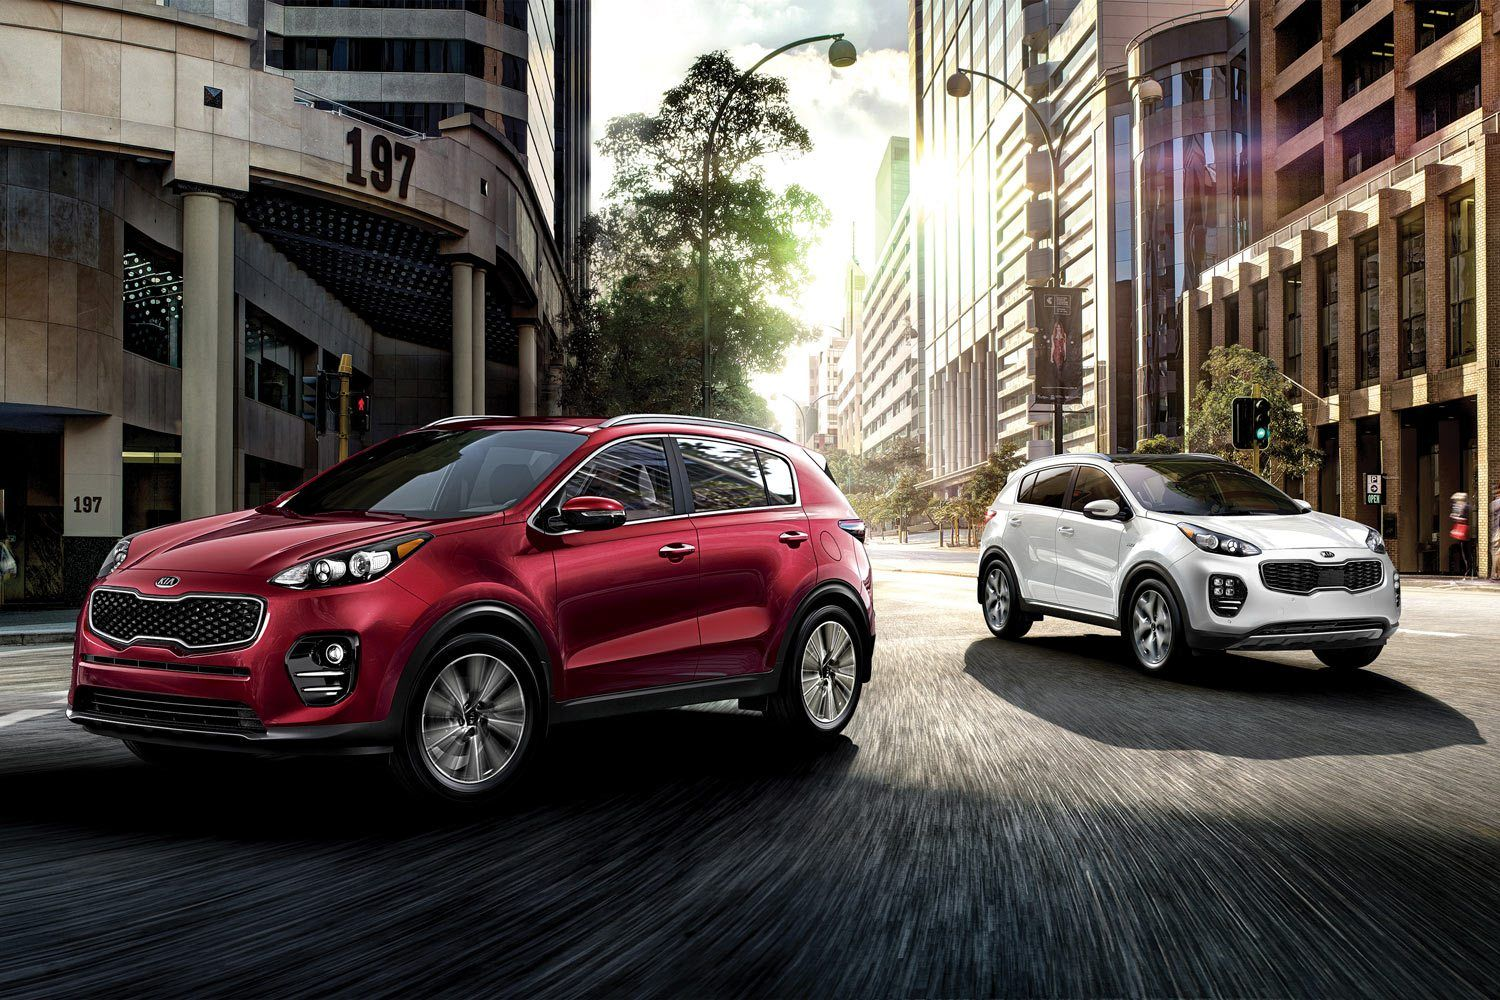 2020 Kia Sportage Changes, Release Date and Price Rumors - New Car ...